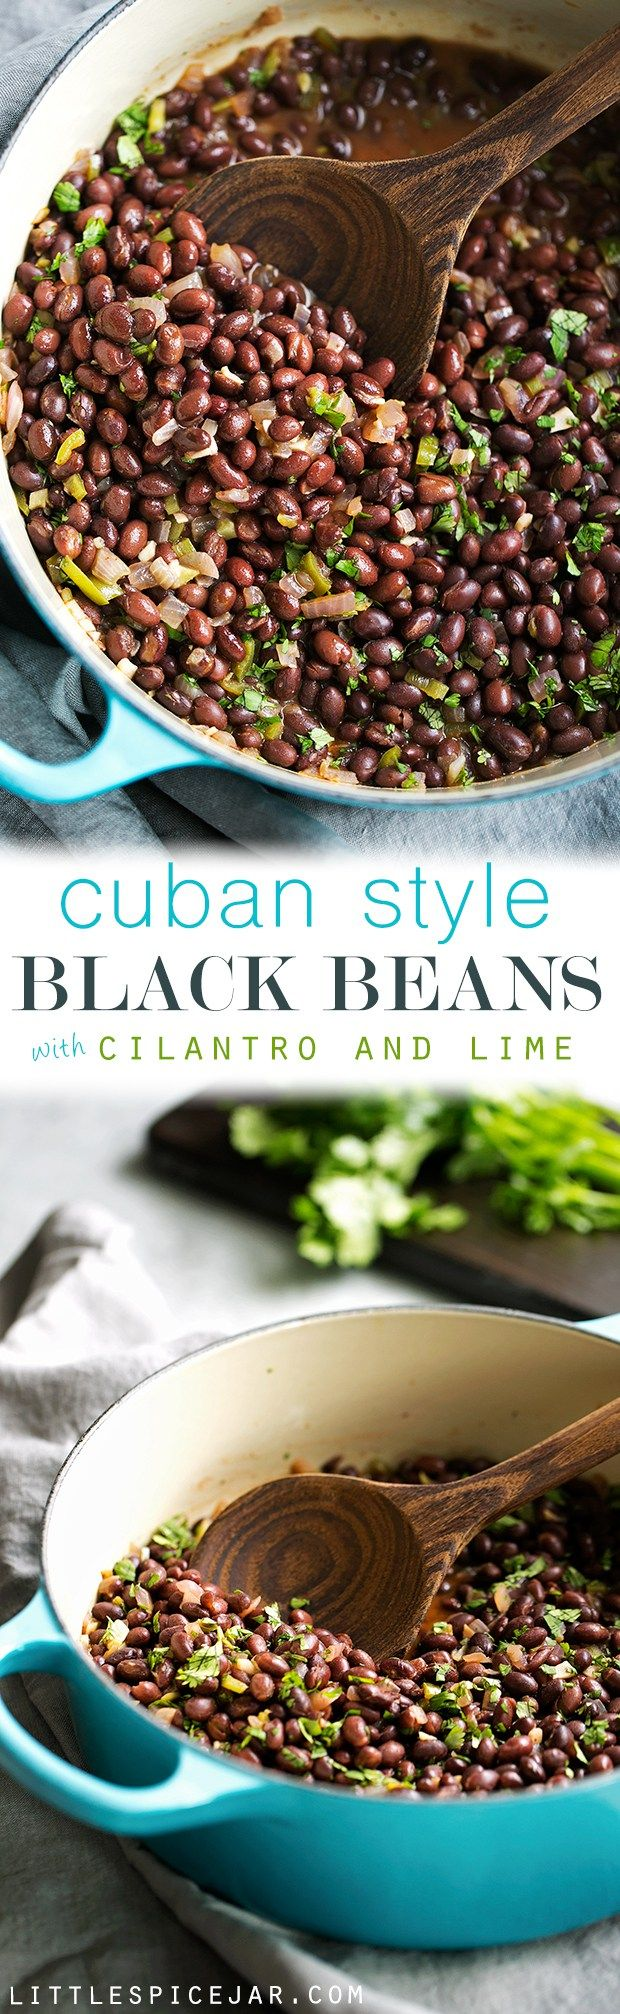 tiffany outlets Cuban Black Beans with Cilantro and Lime  These are the perfect accompaniment to white rice and are completely vegan Slow simmered black beans flavored with cilantro and lime  cubanblackbeans frijolesnegros blackbeans Littlespicejar com